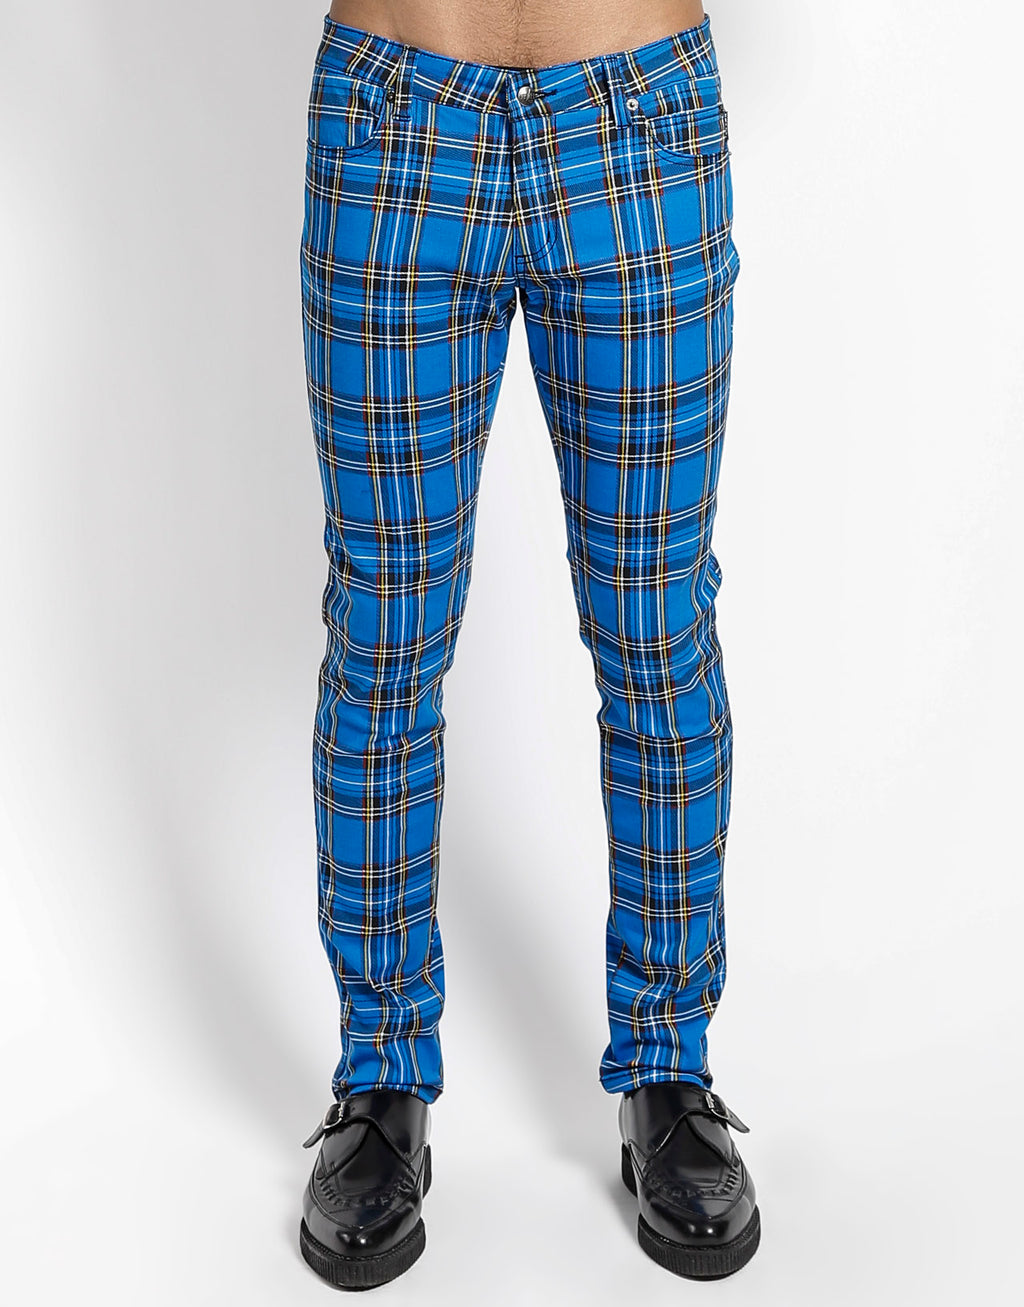 Tripp NYC Men's Plaid Rocker Jean Pants